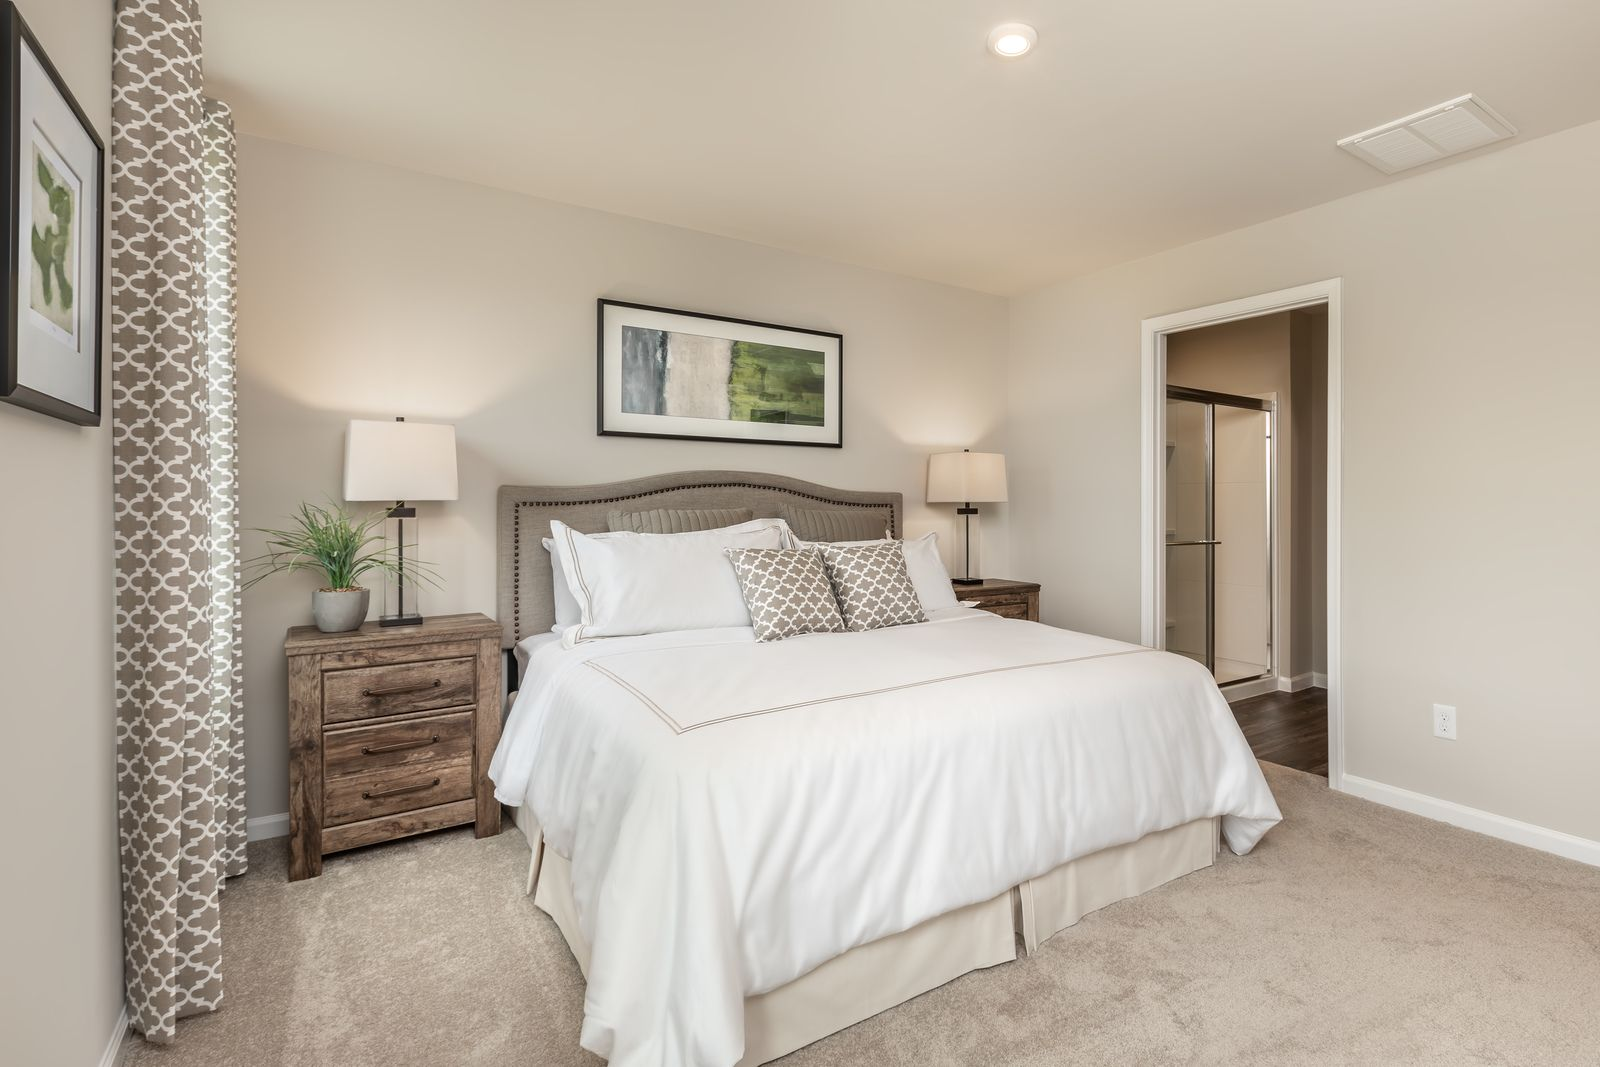 Bedroom featured in the Spruce By Ryan Homes in Akron, OH